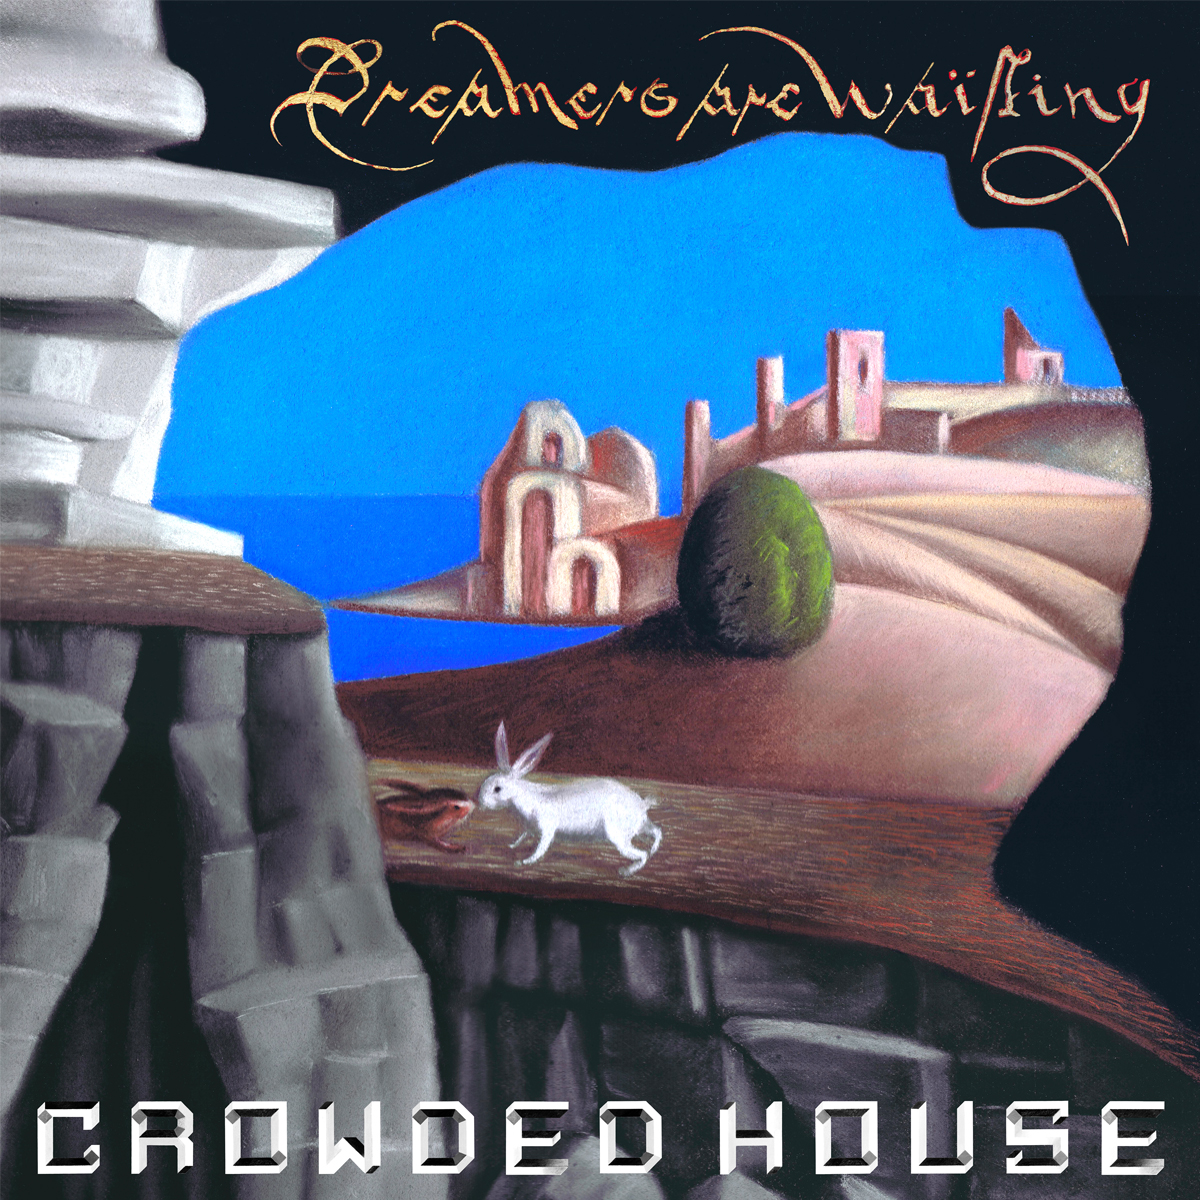 Crowded House album 2021 Dreamers Are Waiting